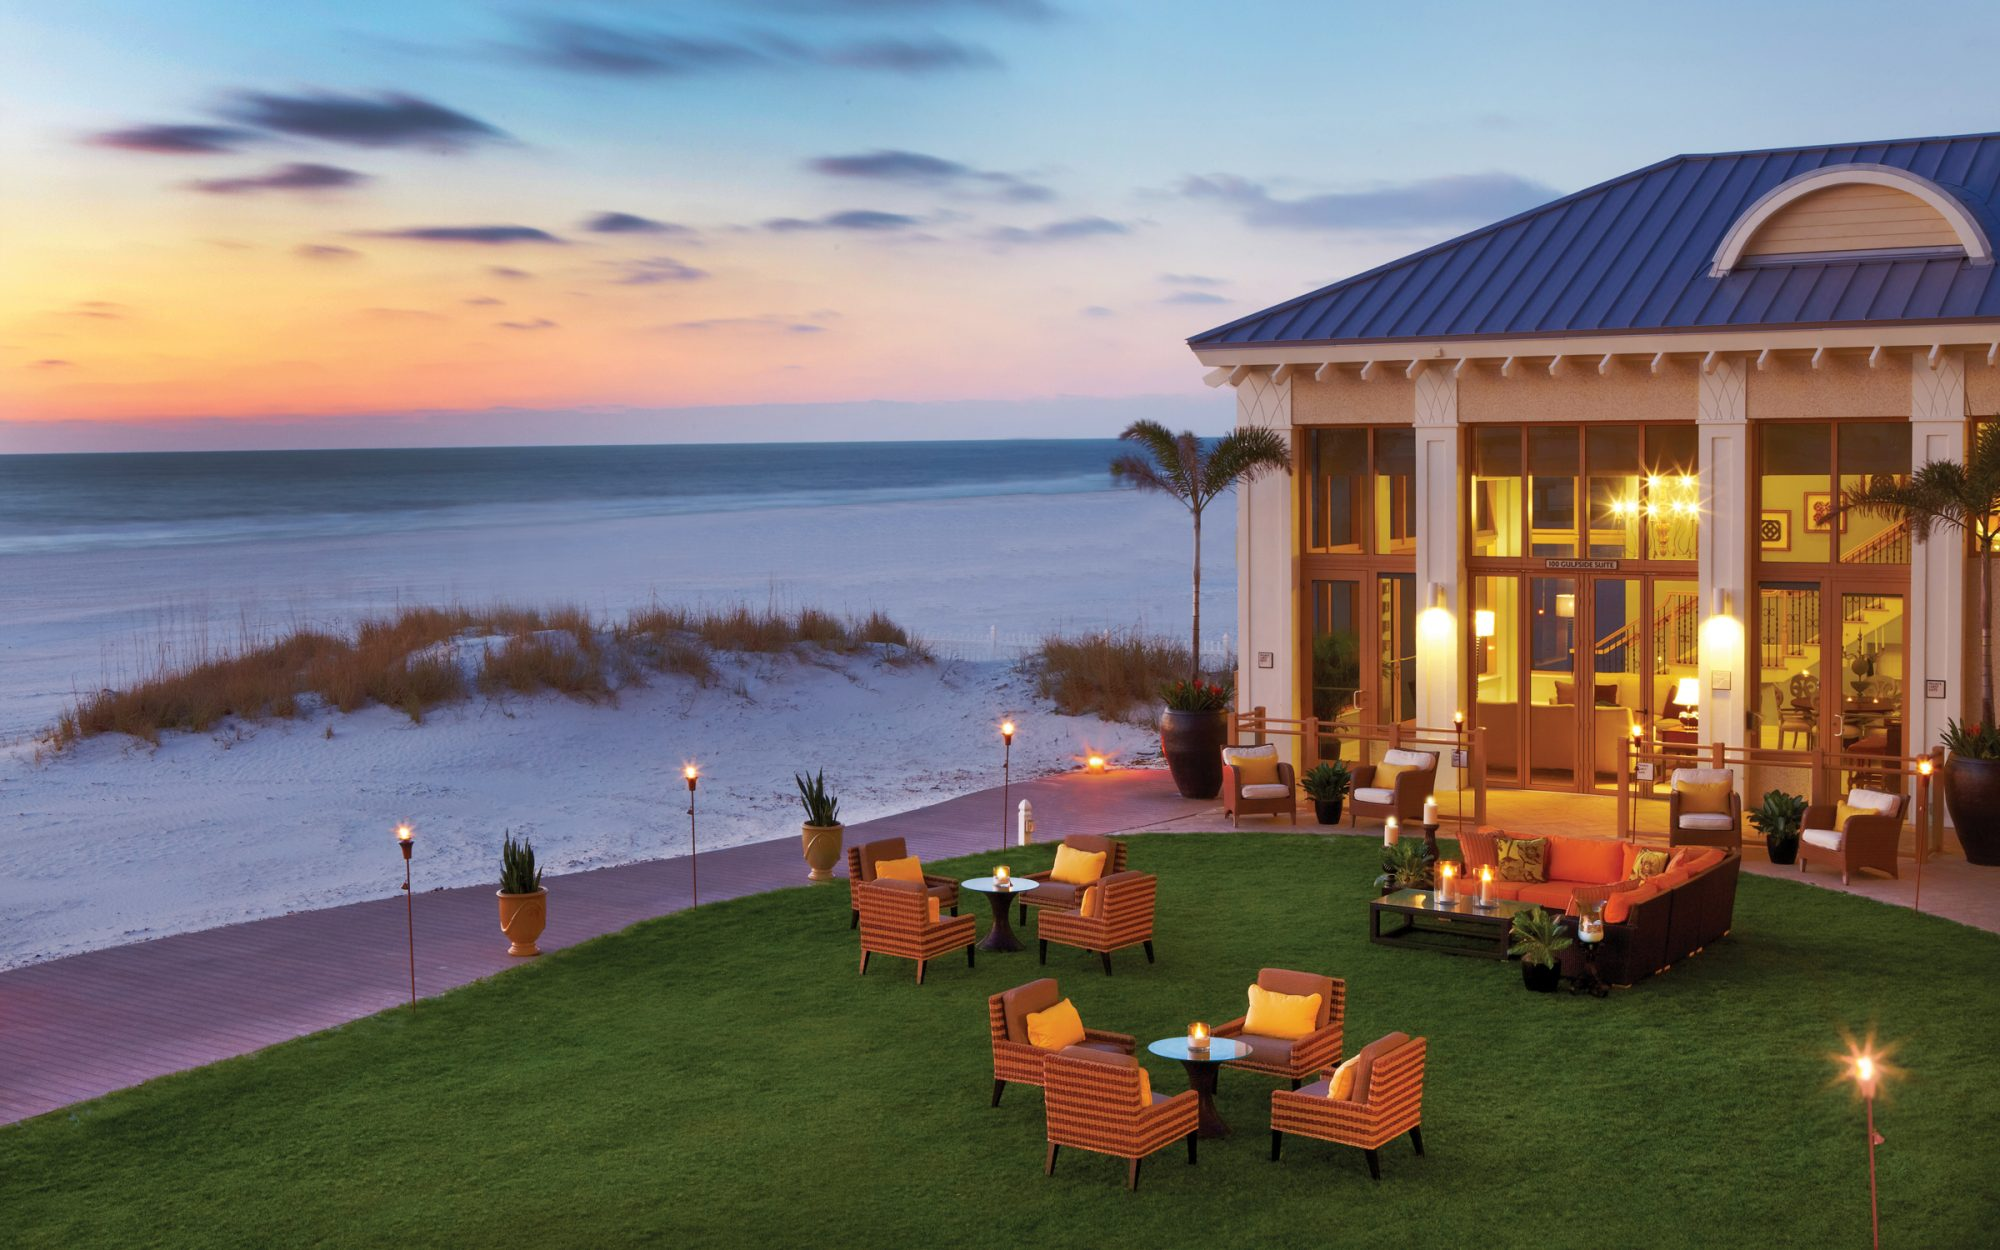 No. 5: Sandpearl Resort, Clearwater Beach